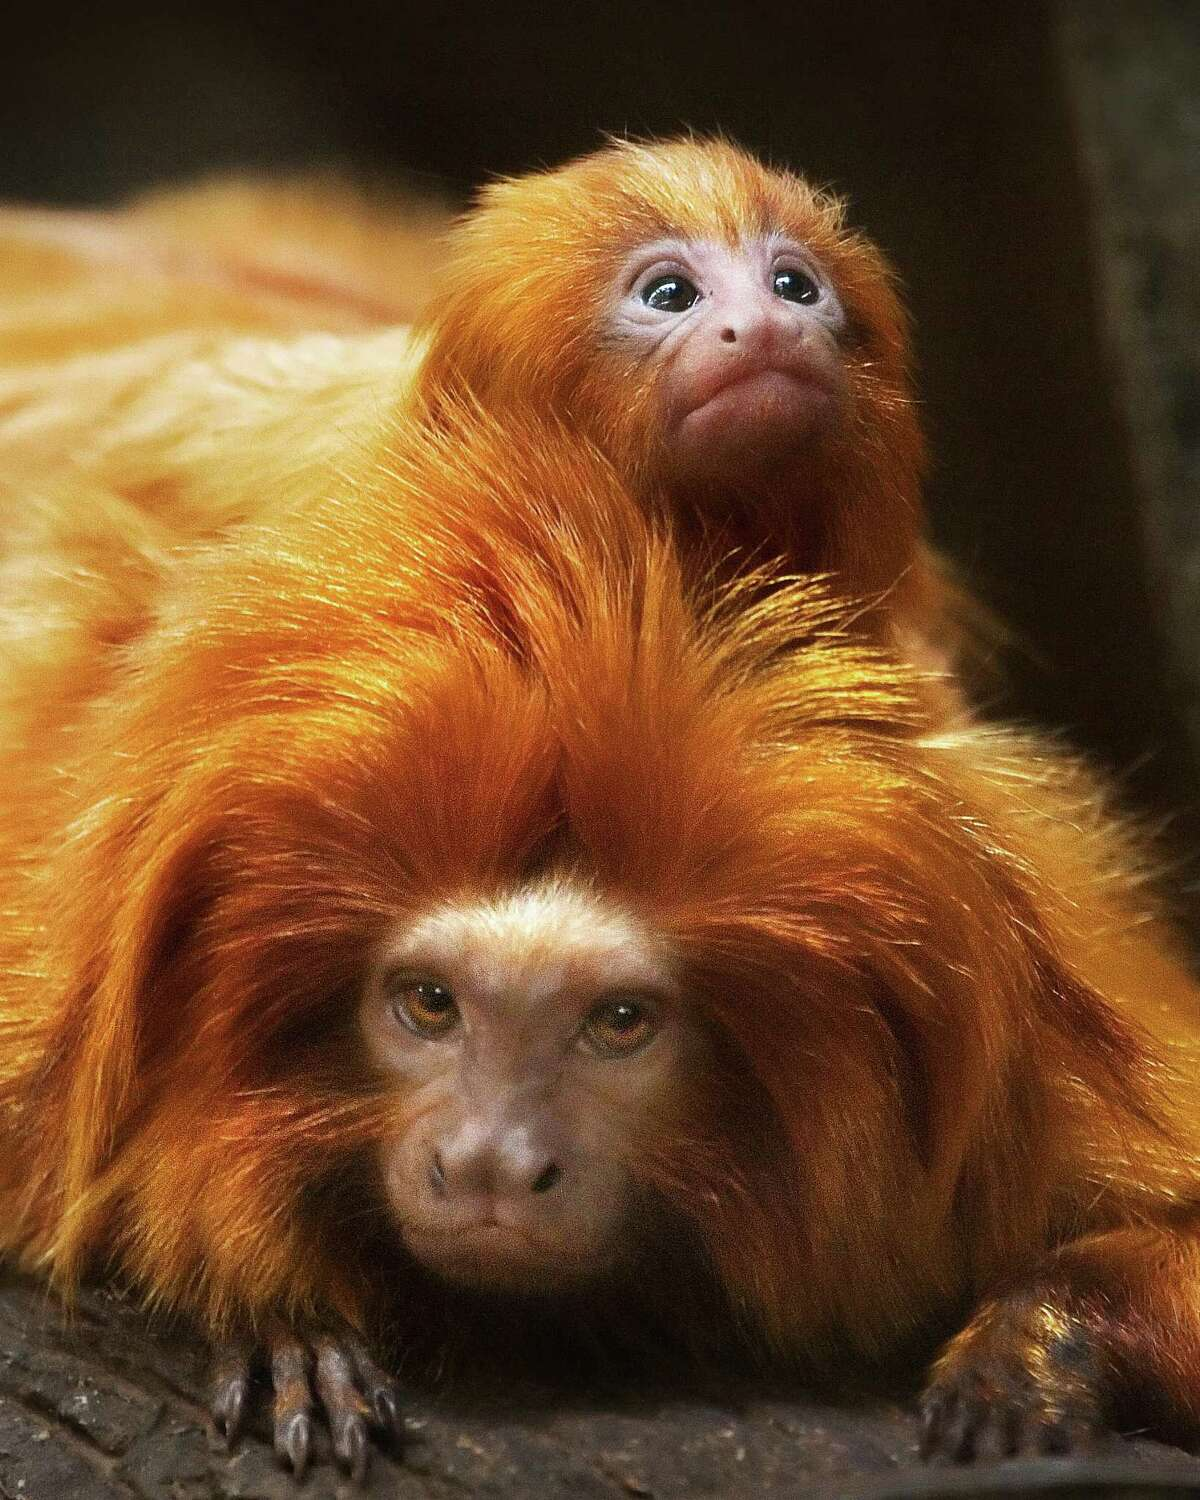 Connecticut's Beardsley Zoo has golden lion tamarins, a New World monkey native to the Atlantic coastal forests of Brazil. It is now an endangered species.